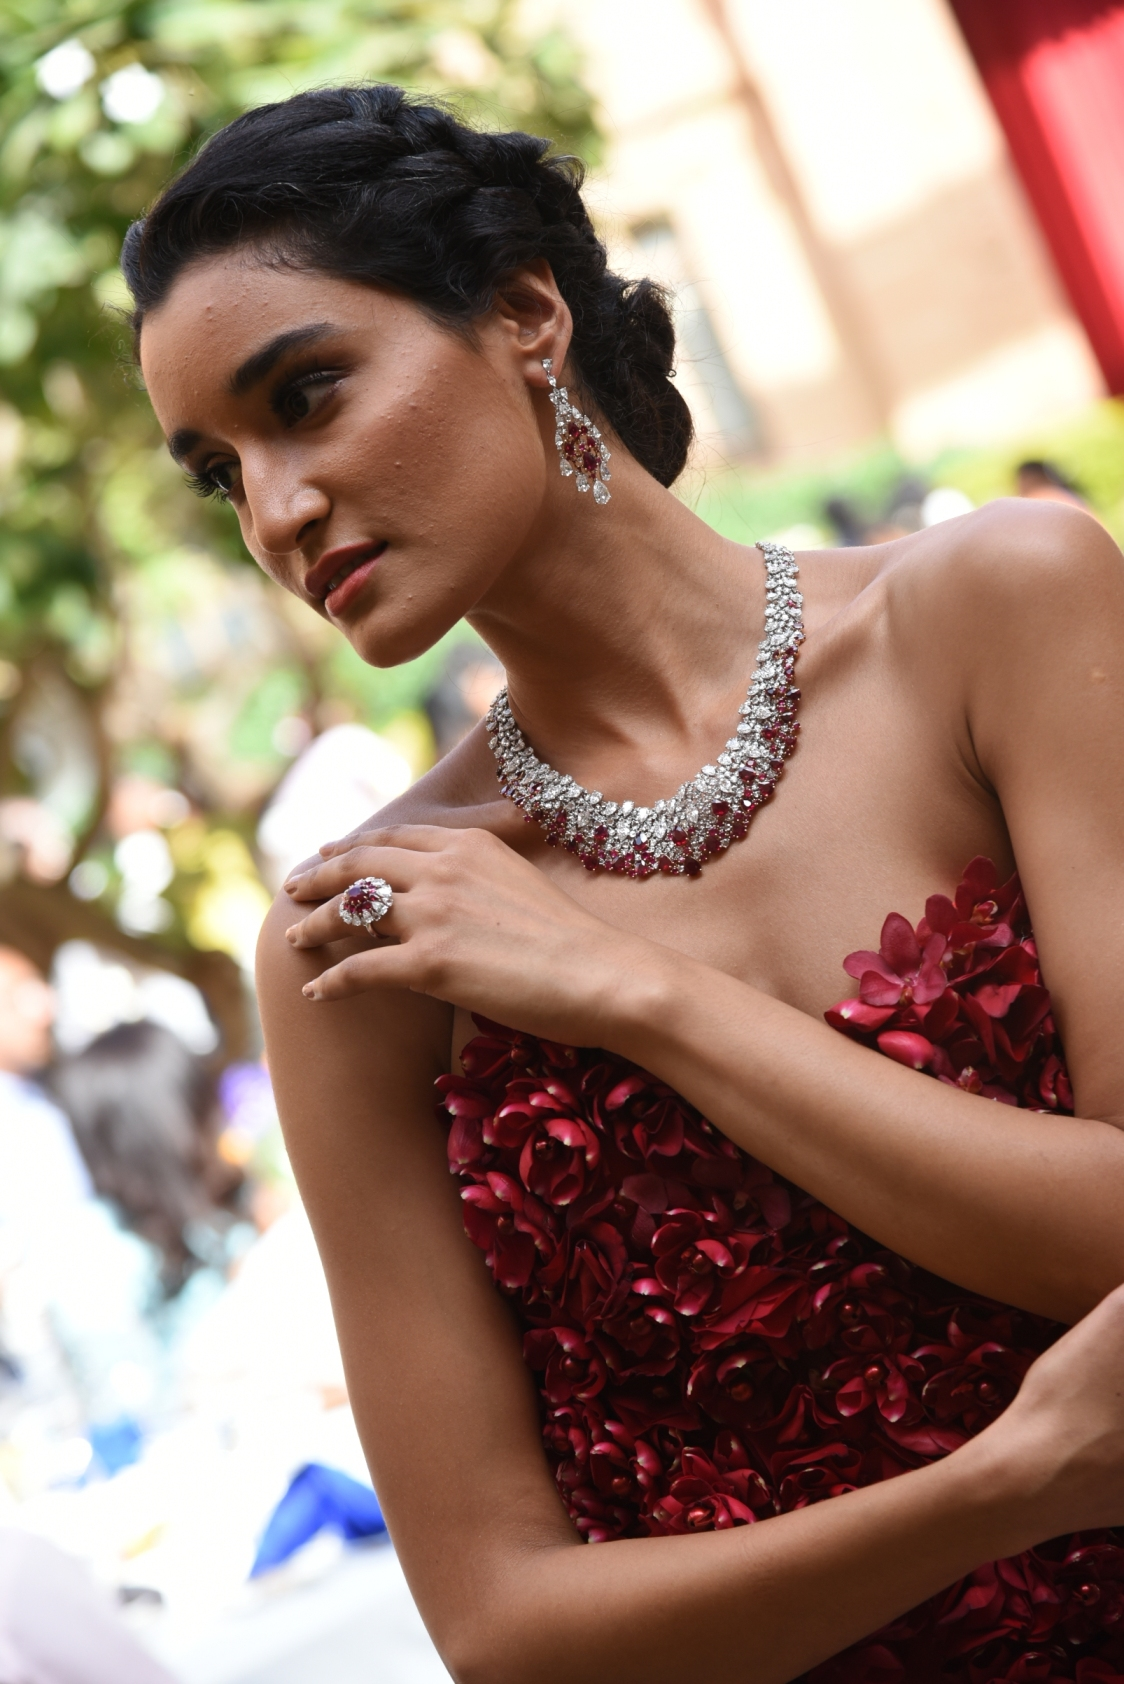 india's international luxury jeweler, nirav modi, celebrates 5